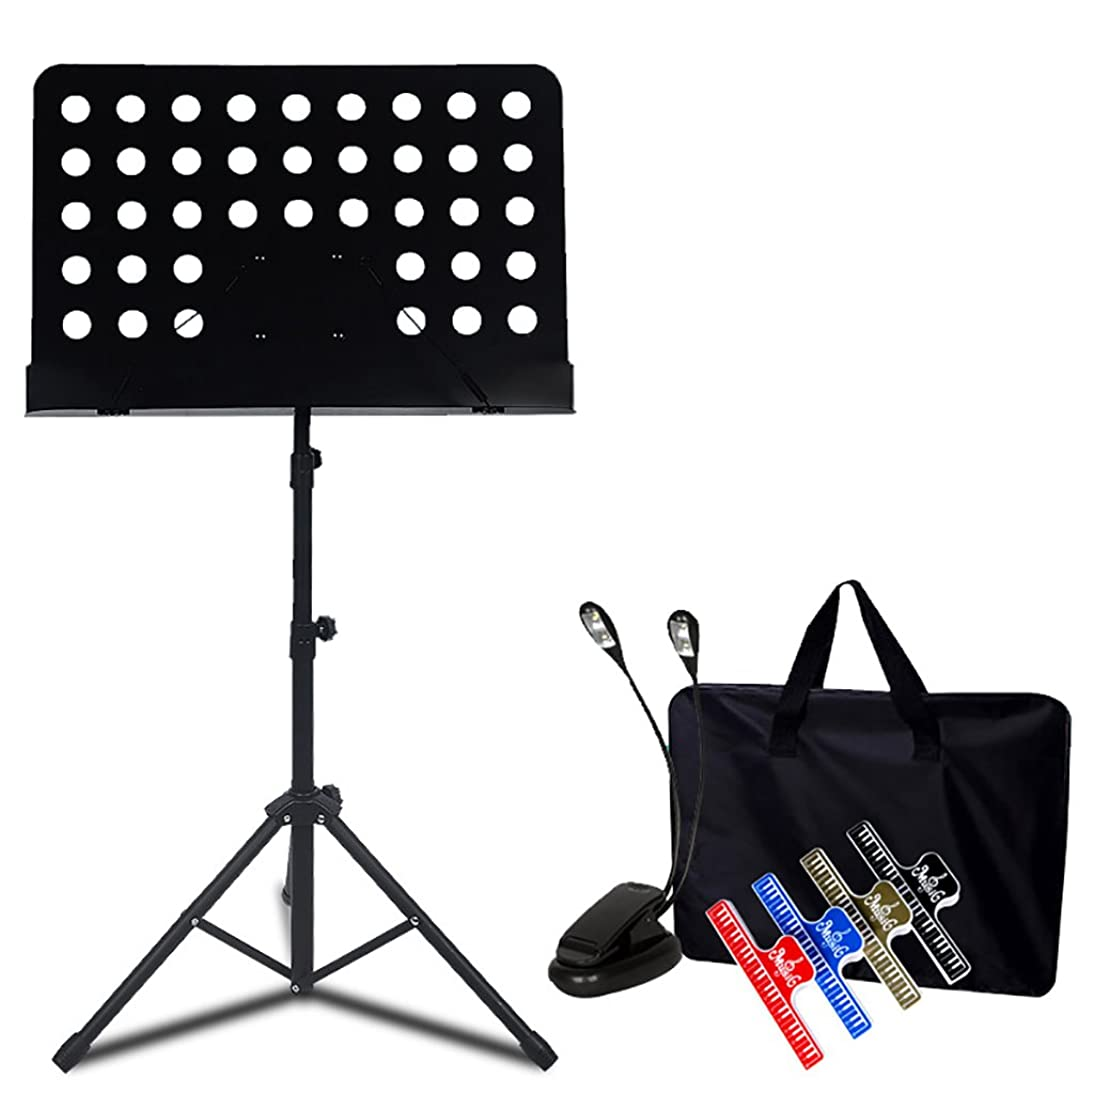 Metal Adjustable Sheet Music Stand Holder With Tripod Base - With Height & Angle Adjustment (Color : Style8) rnzg224773915101